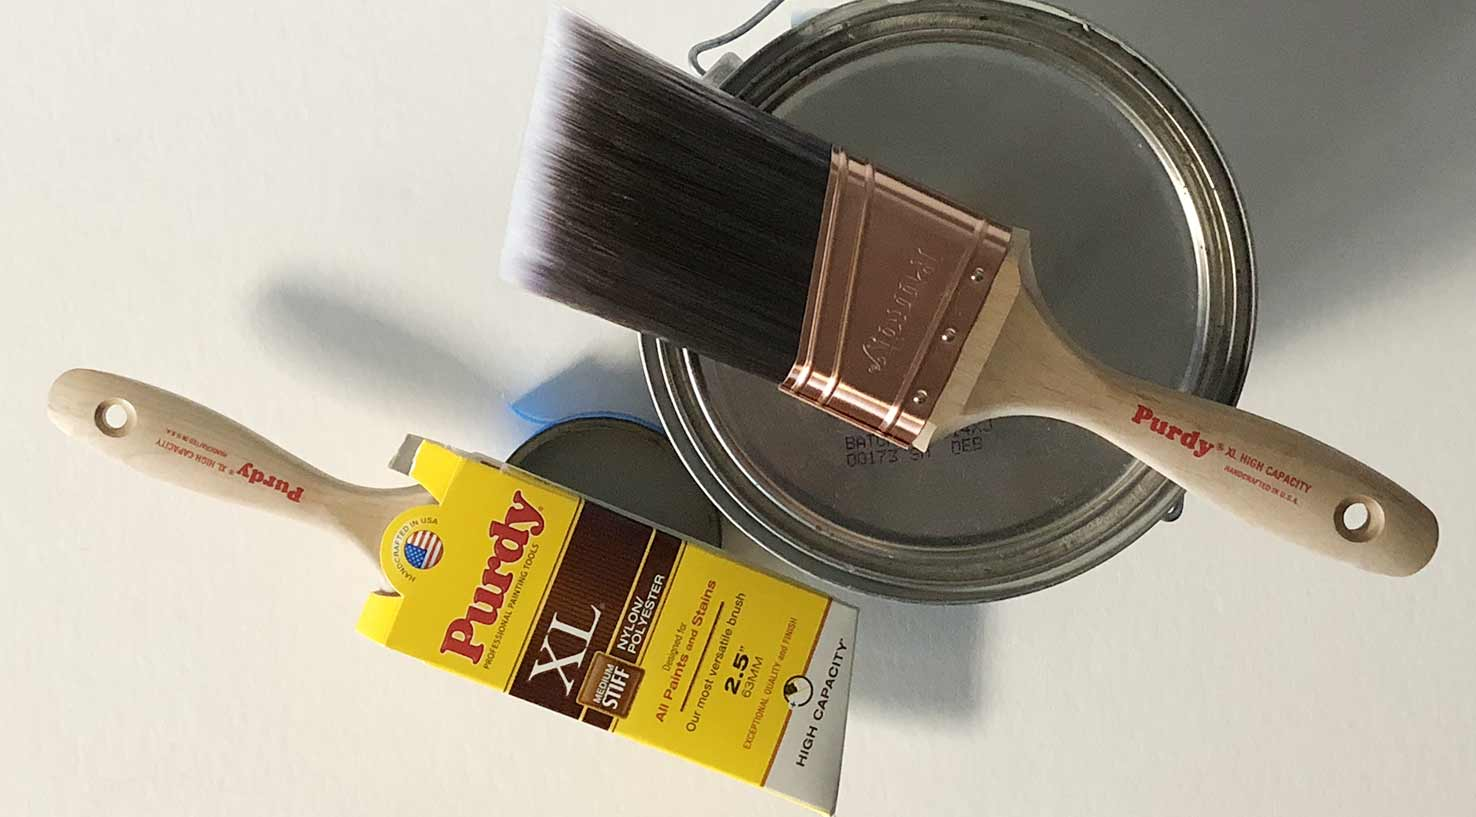 two new Purdy XL High Capacity brushes